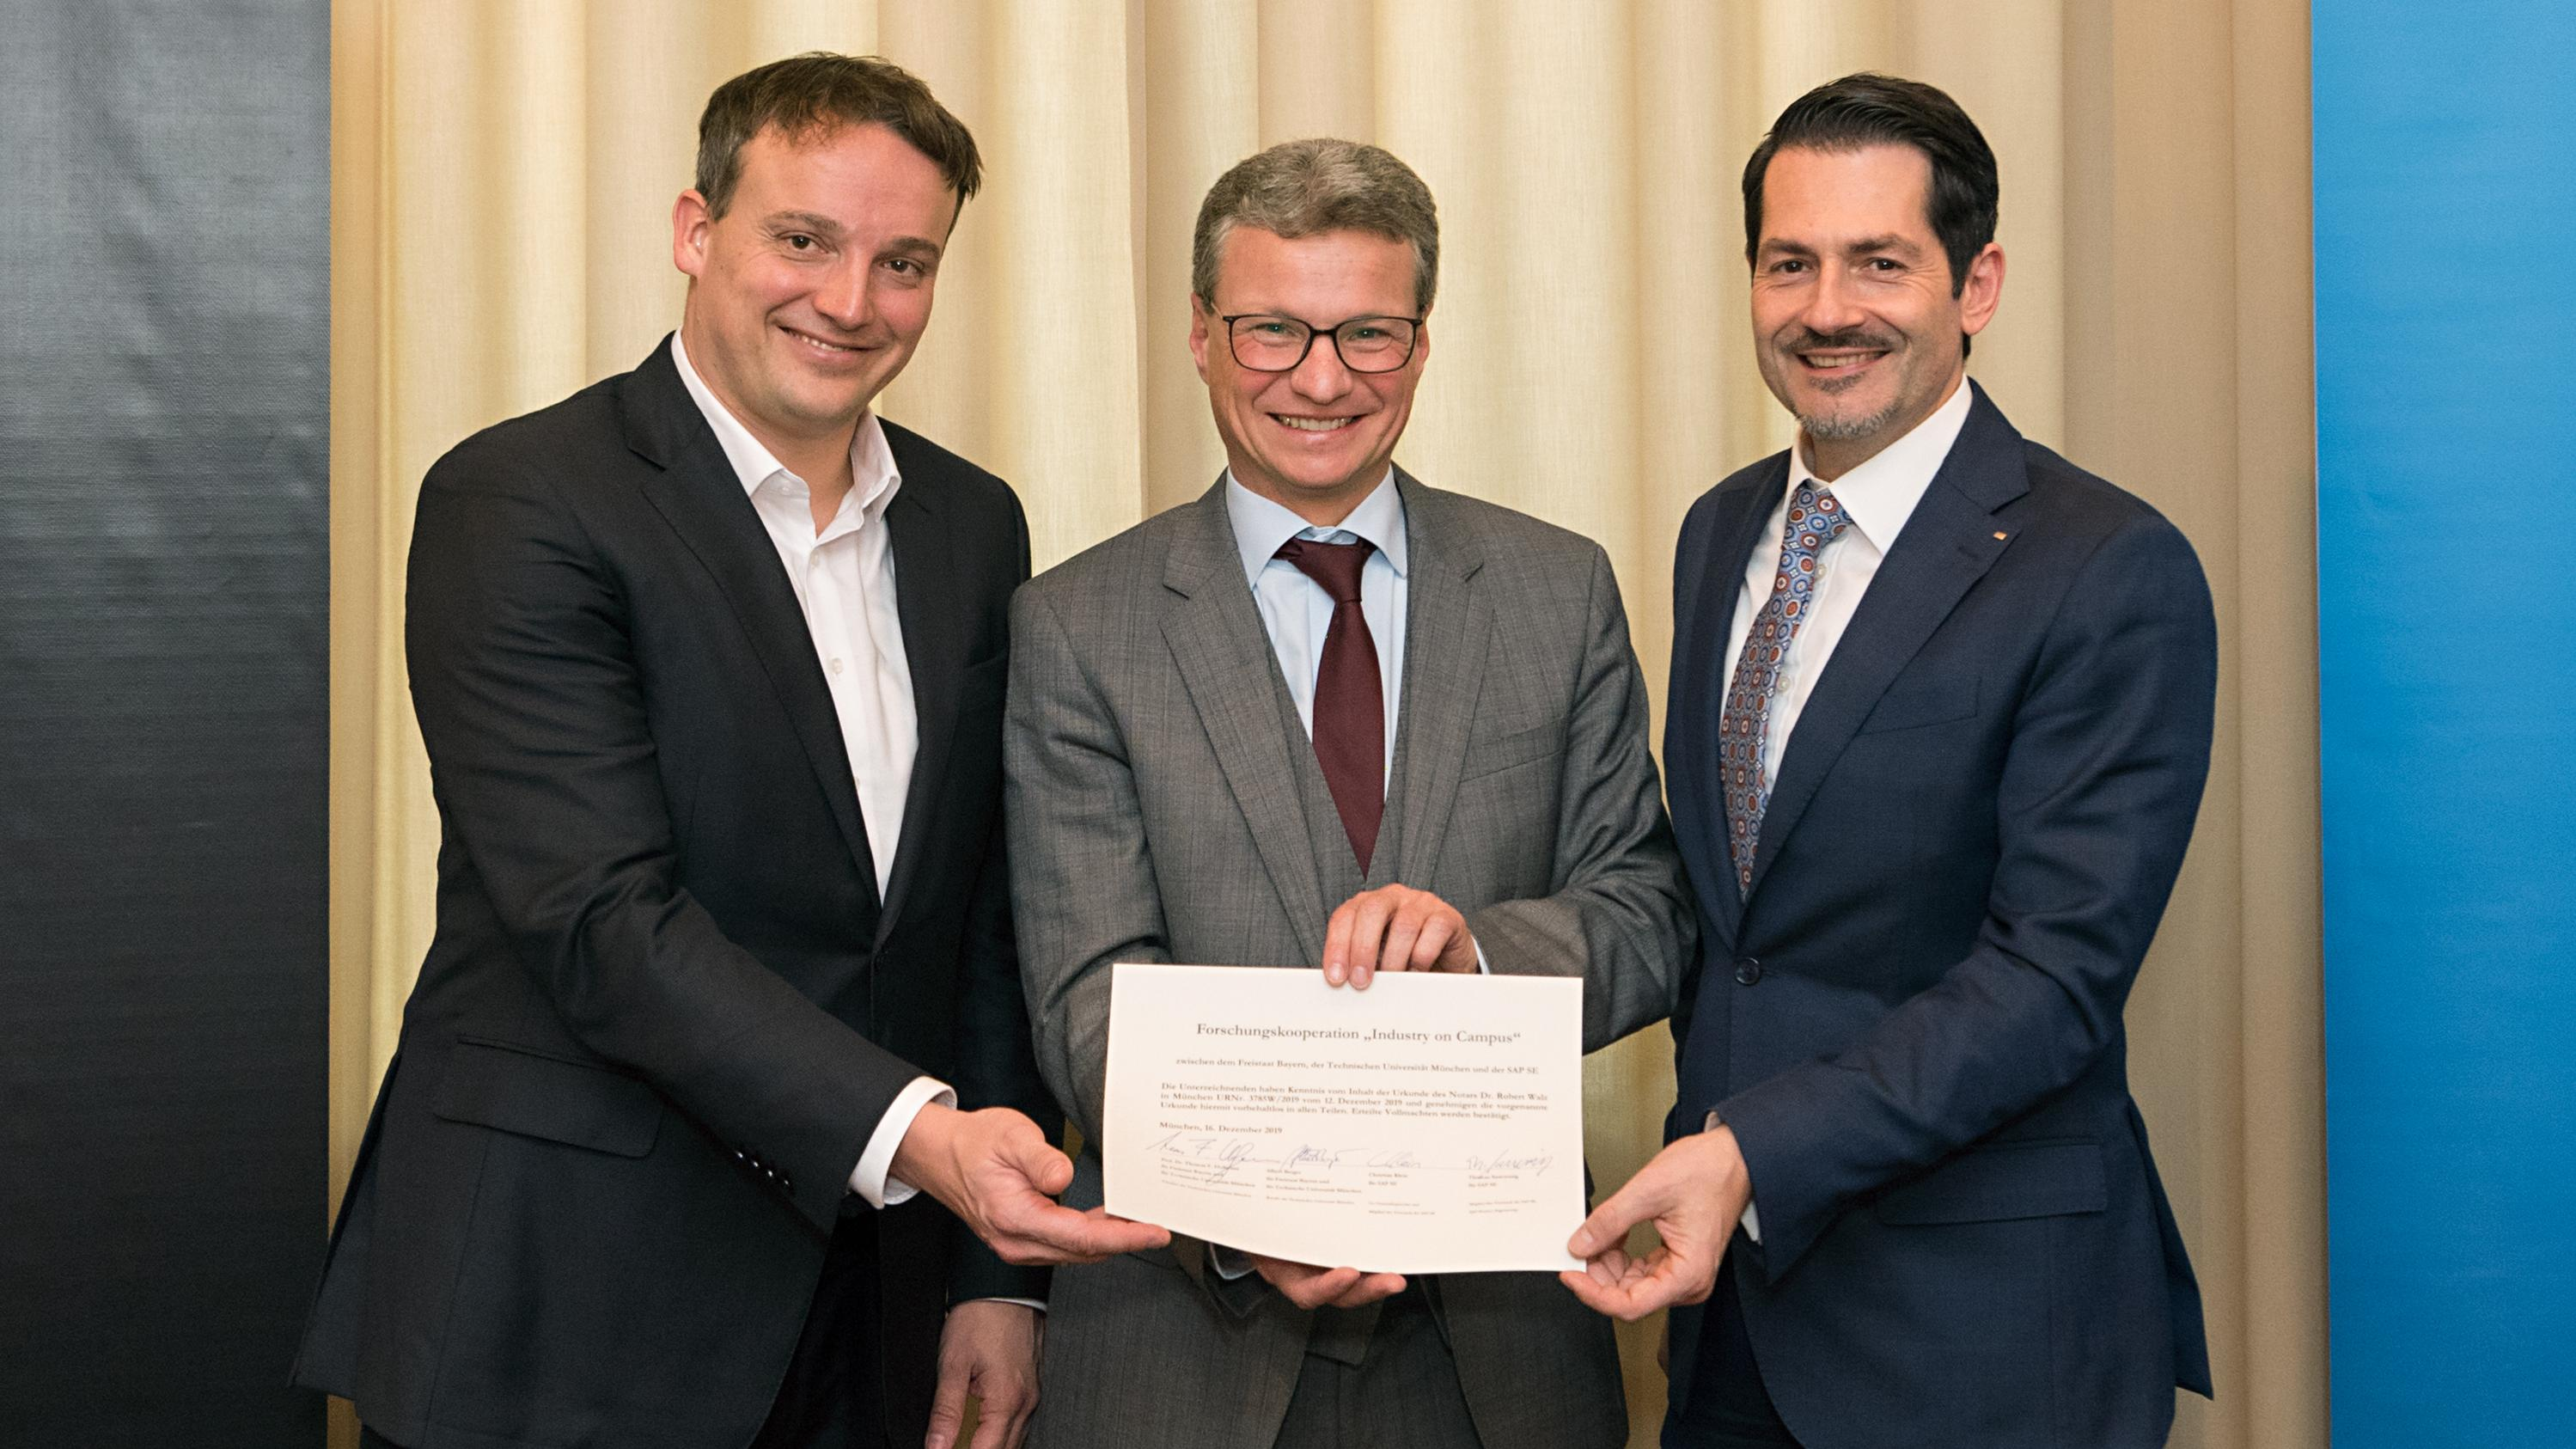 SAP Co-CEO Christian Klein, Science Minister Bernd Sibler, and TUM President Prof. Thomas F. Hofmann (from left) after signing the cooperation agreement.